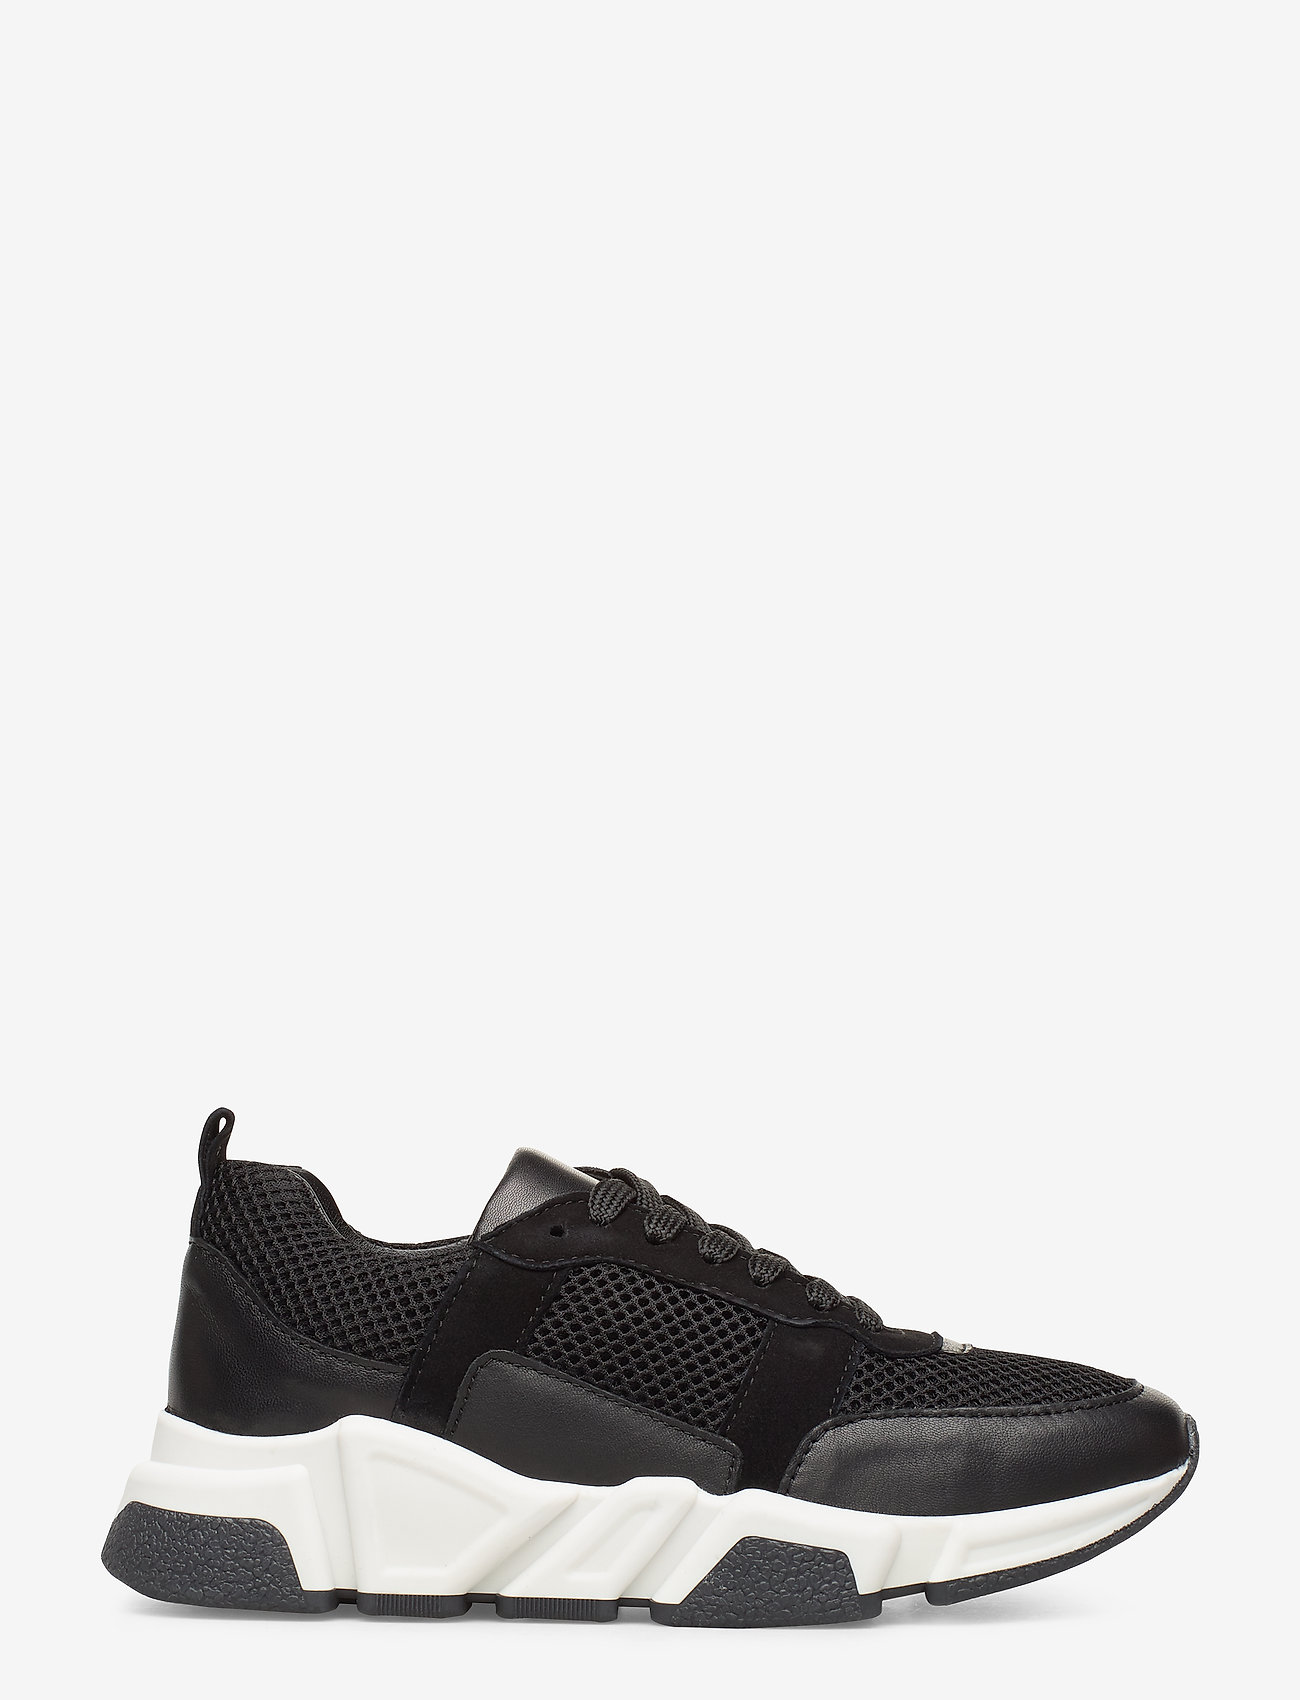 Billi Bi - SHOES 8853 - chunky sneakers - black comb. 500 - 1